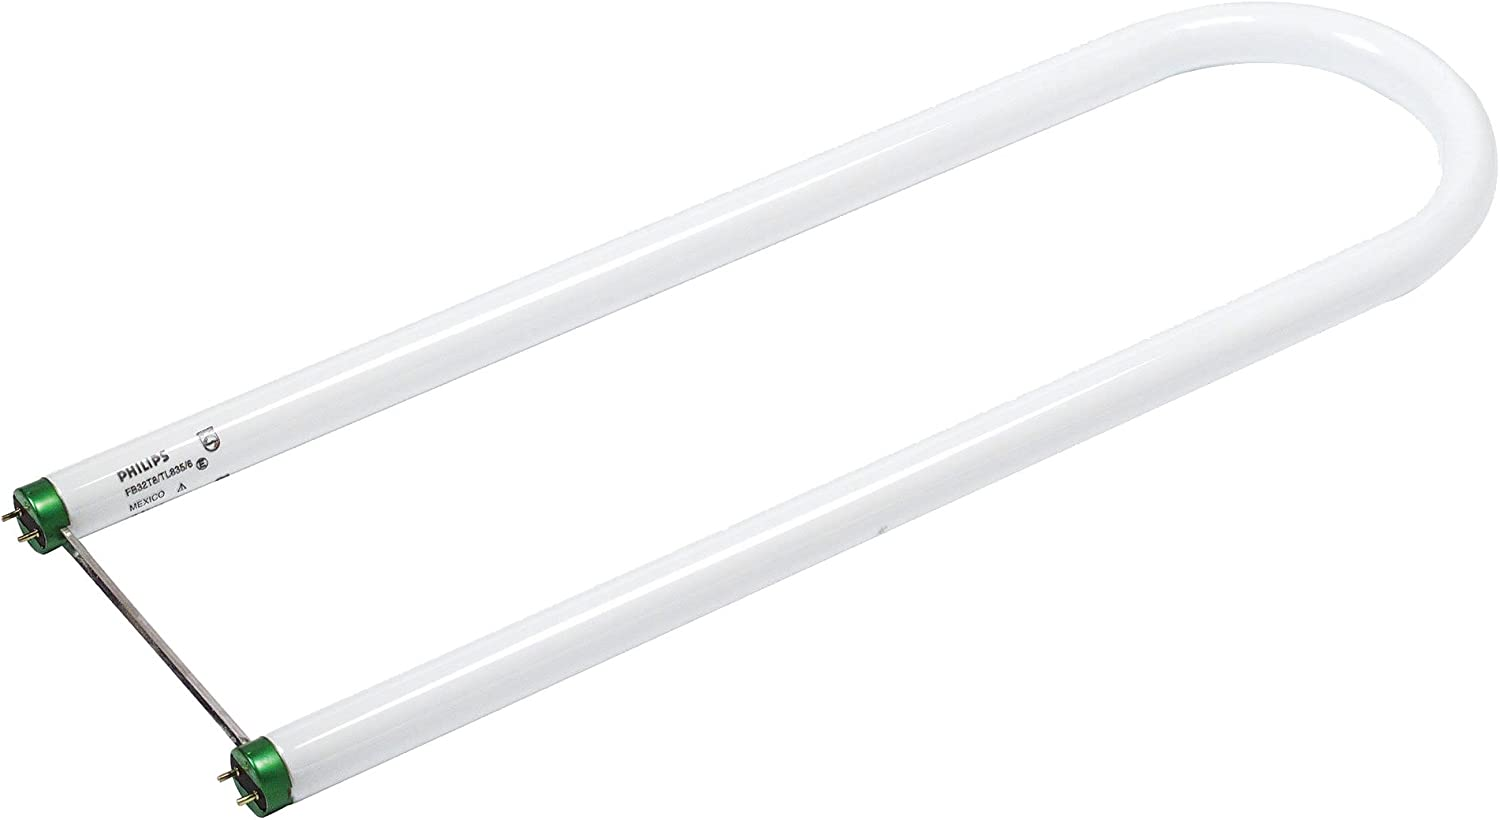 Philips 378927 - FB32T8 TL730 6 Shaped T8 ALTO Fluorescent Regular dealer At the price of surprise U Tub